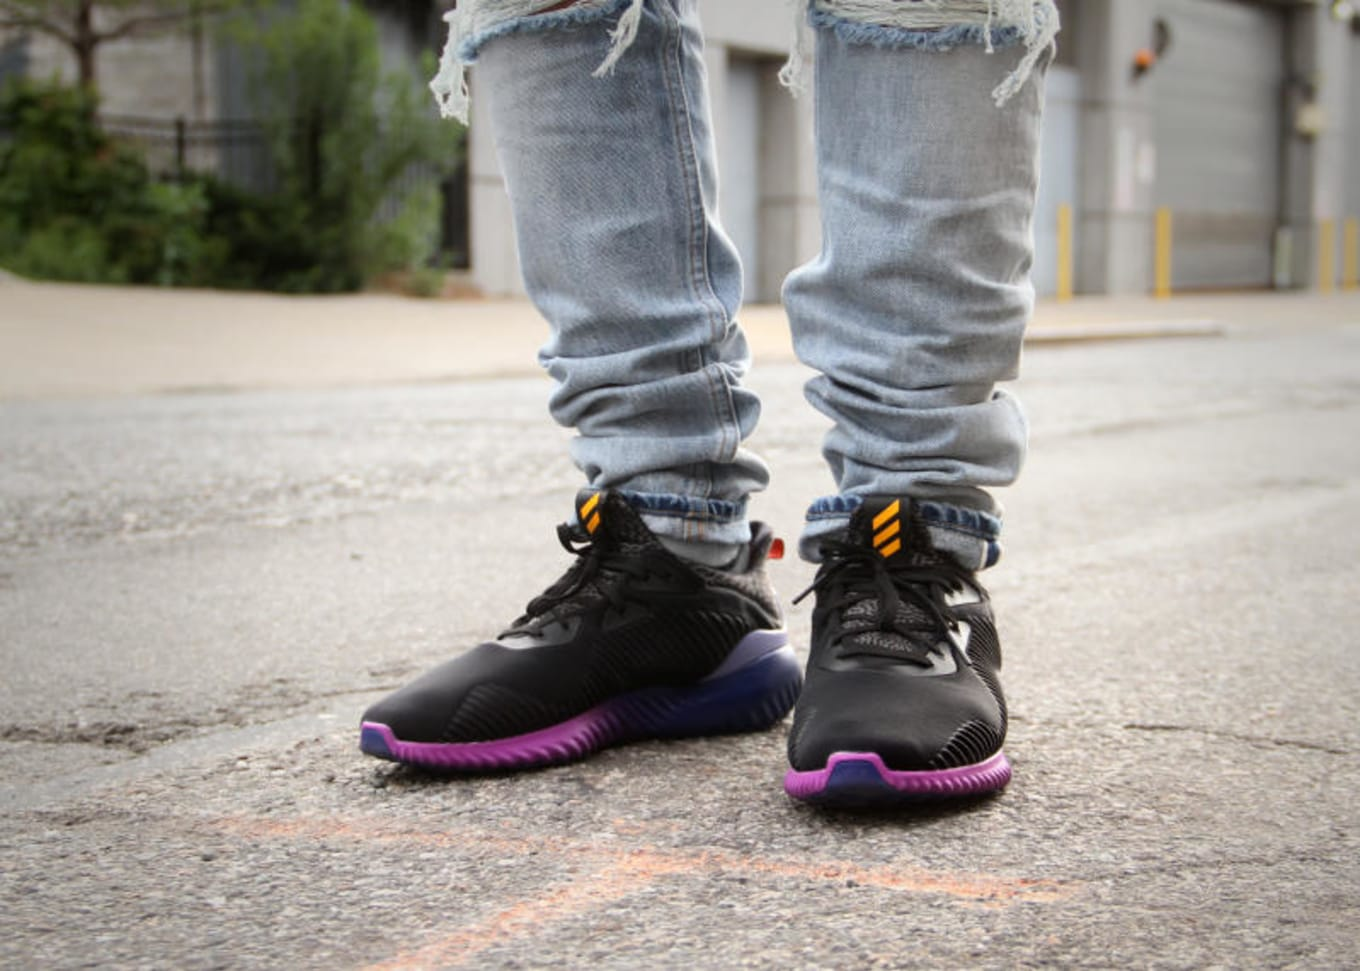 c7a823d6c3f7b8 The more colorful pair of AlphaBOUNCE feels more casual